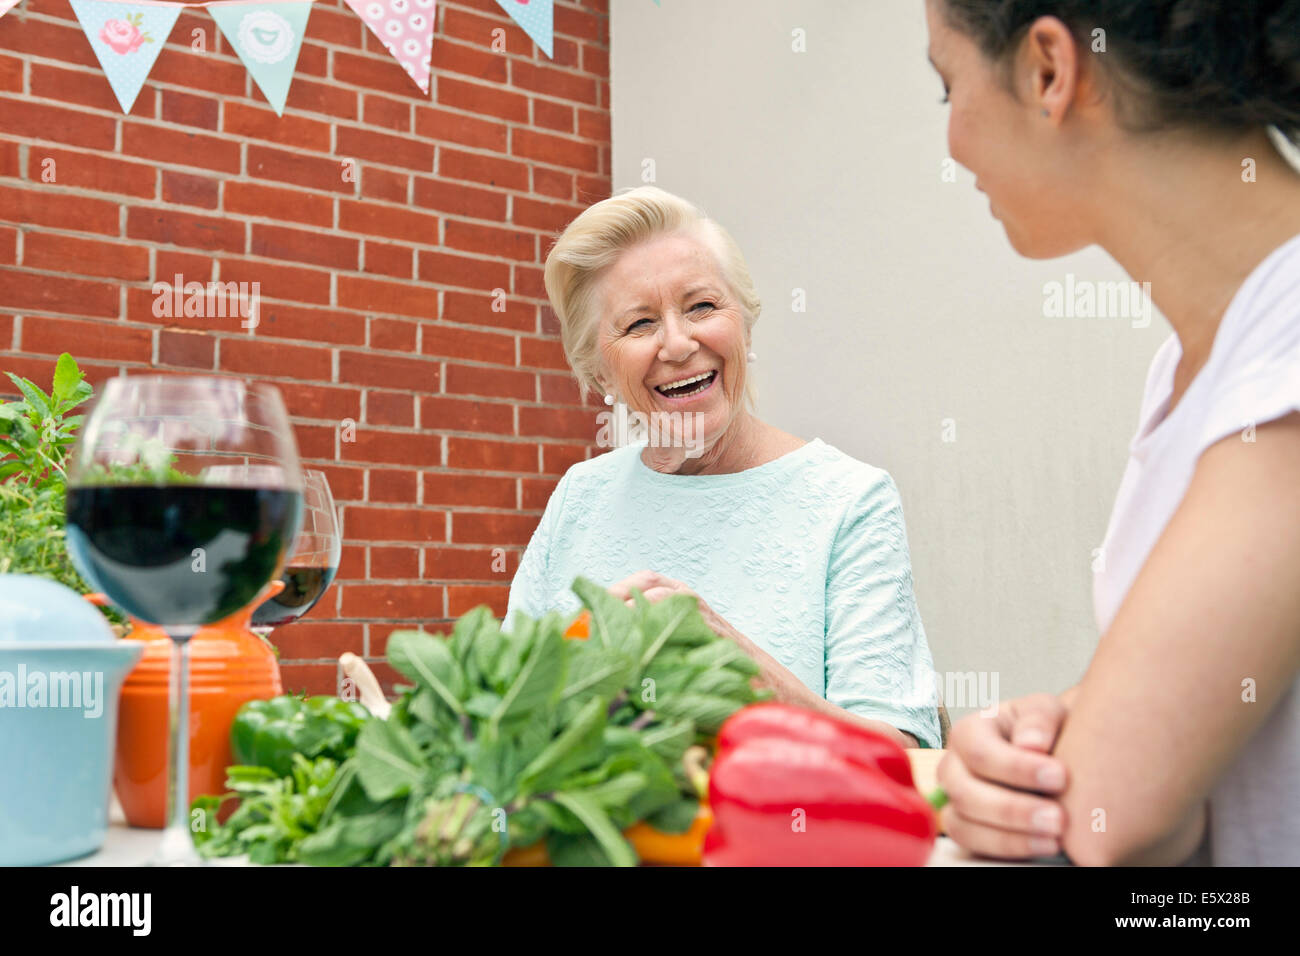 Two women chatting while preparing food at garden table - Stock Image